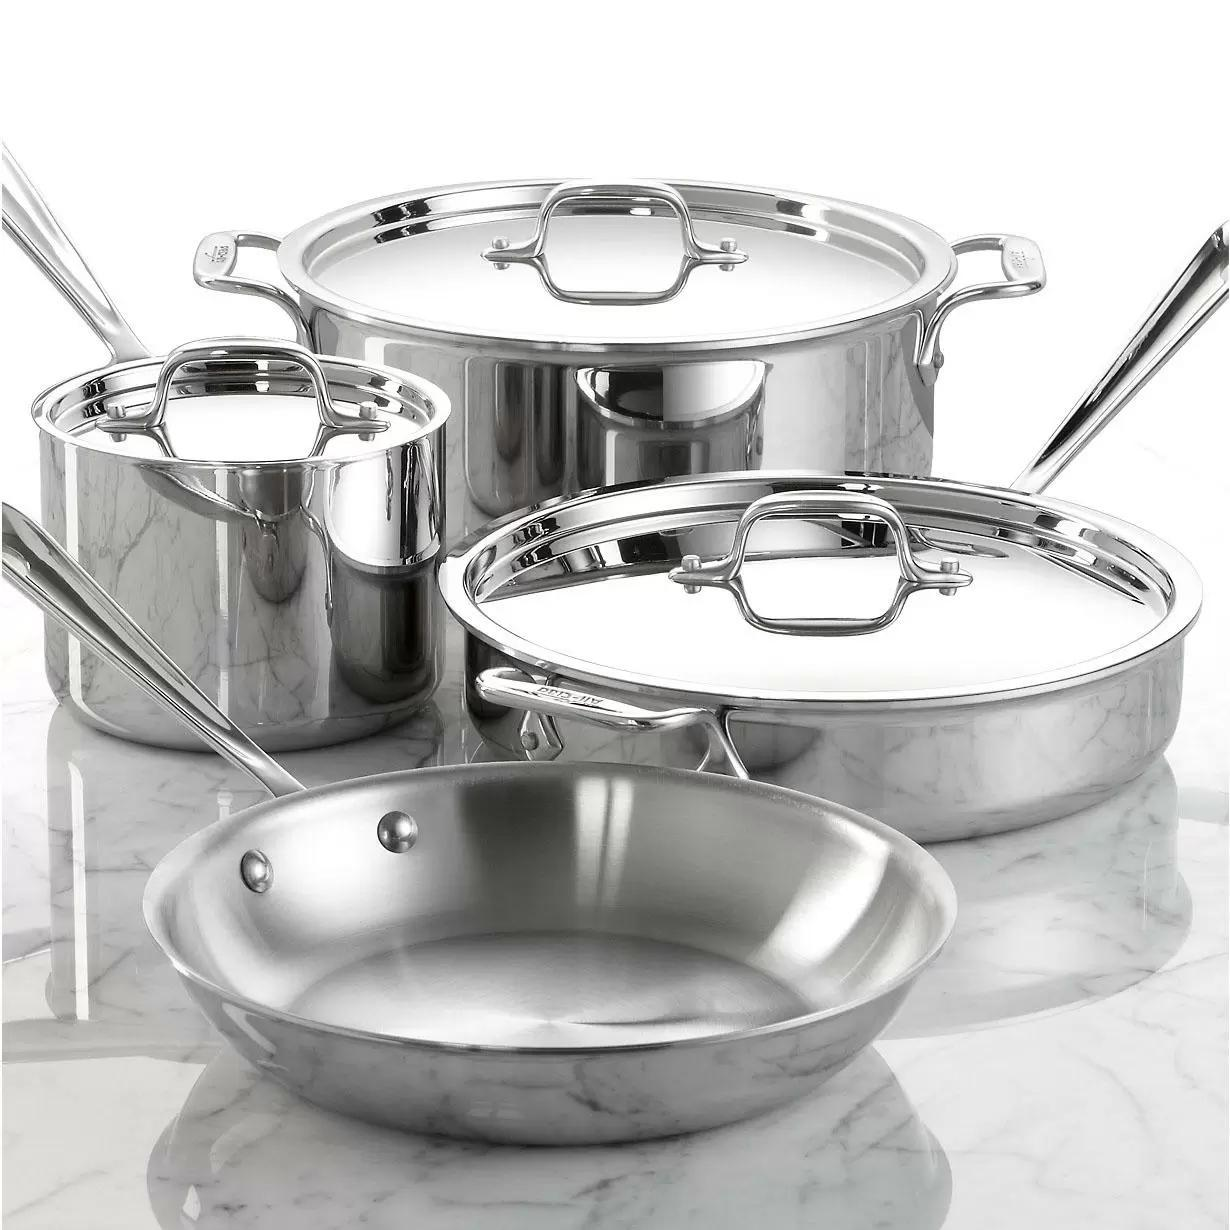 All-Clad Stainless Steel 7-Piece Cookware Set for $299.99 Shipped